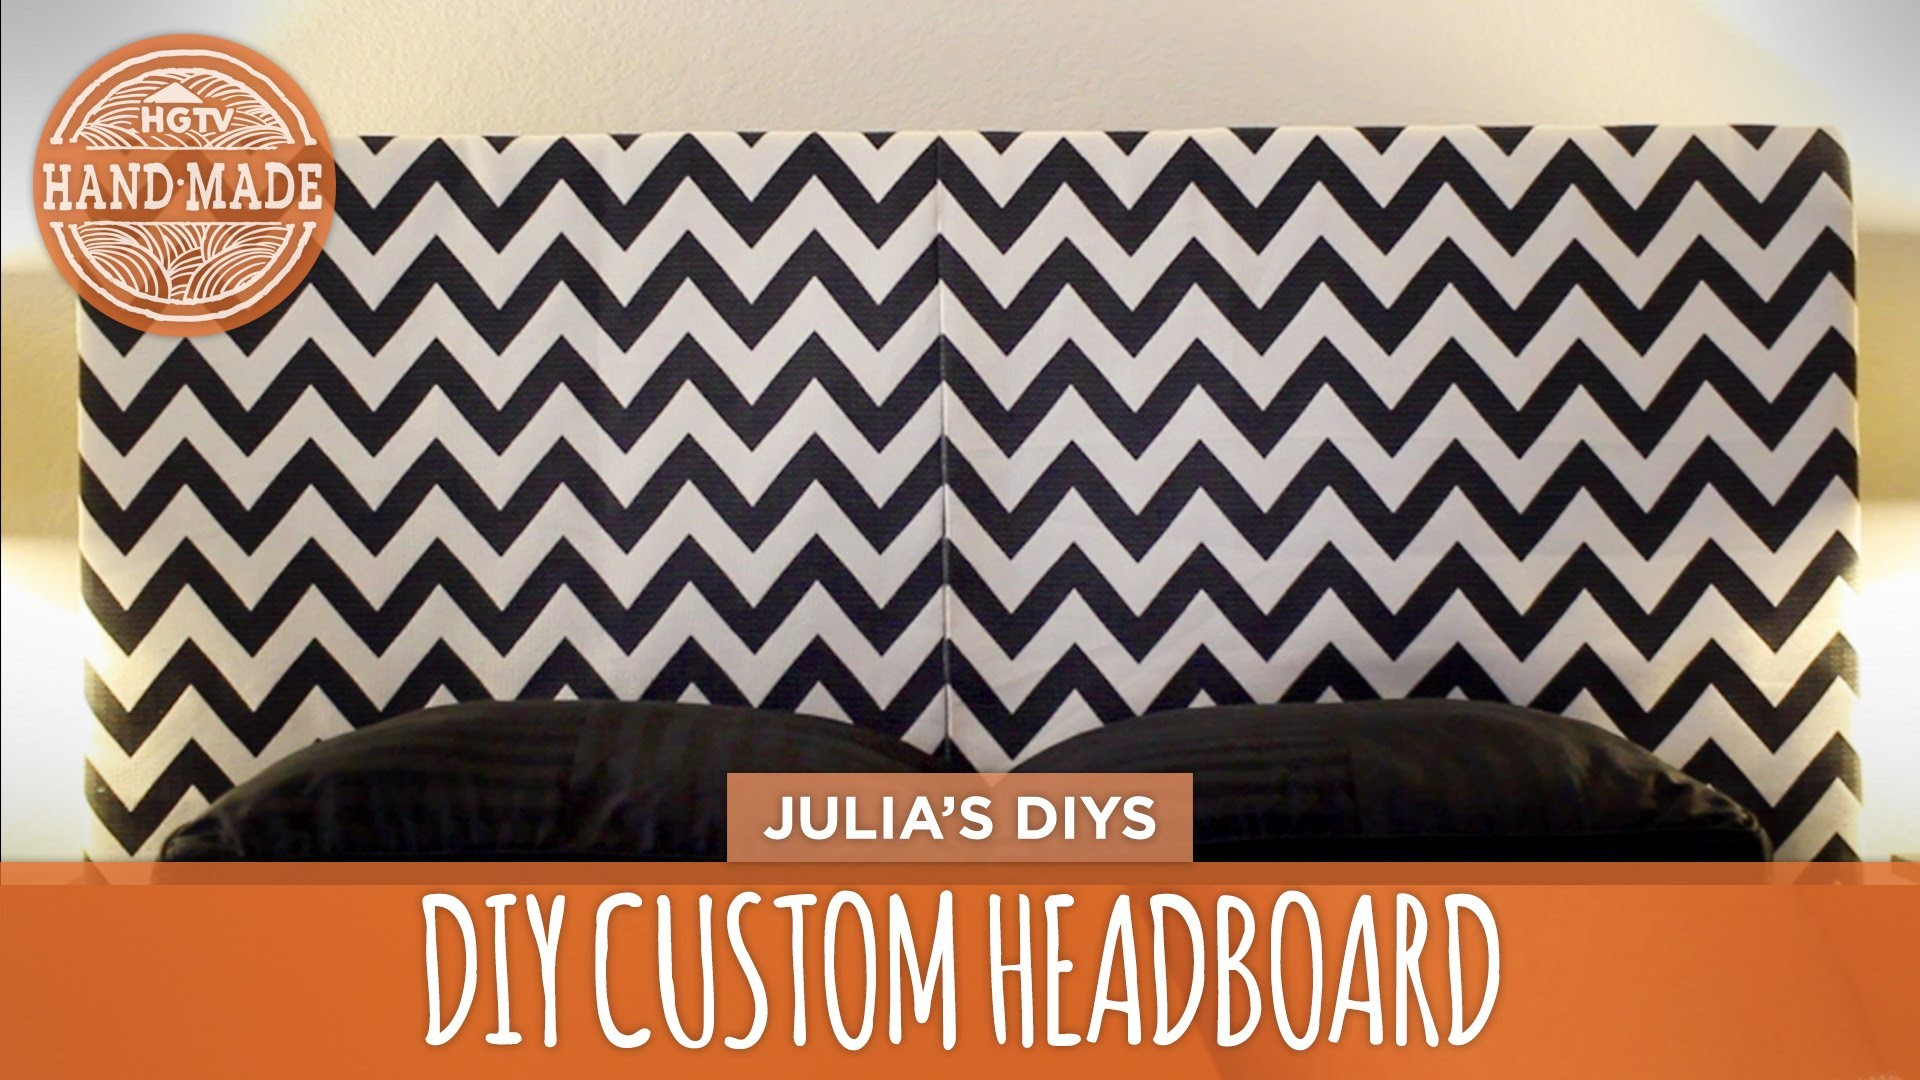 How to Make a Custom Headboard! - DIY Dorm Decor - HGTV Handmade